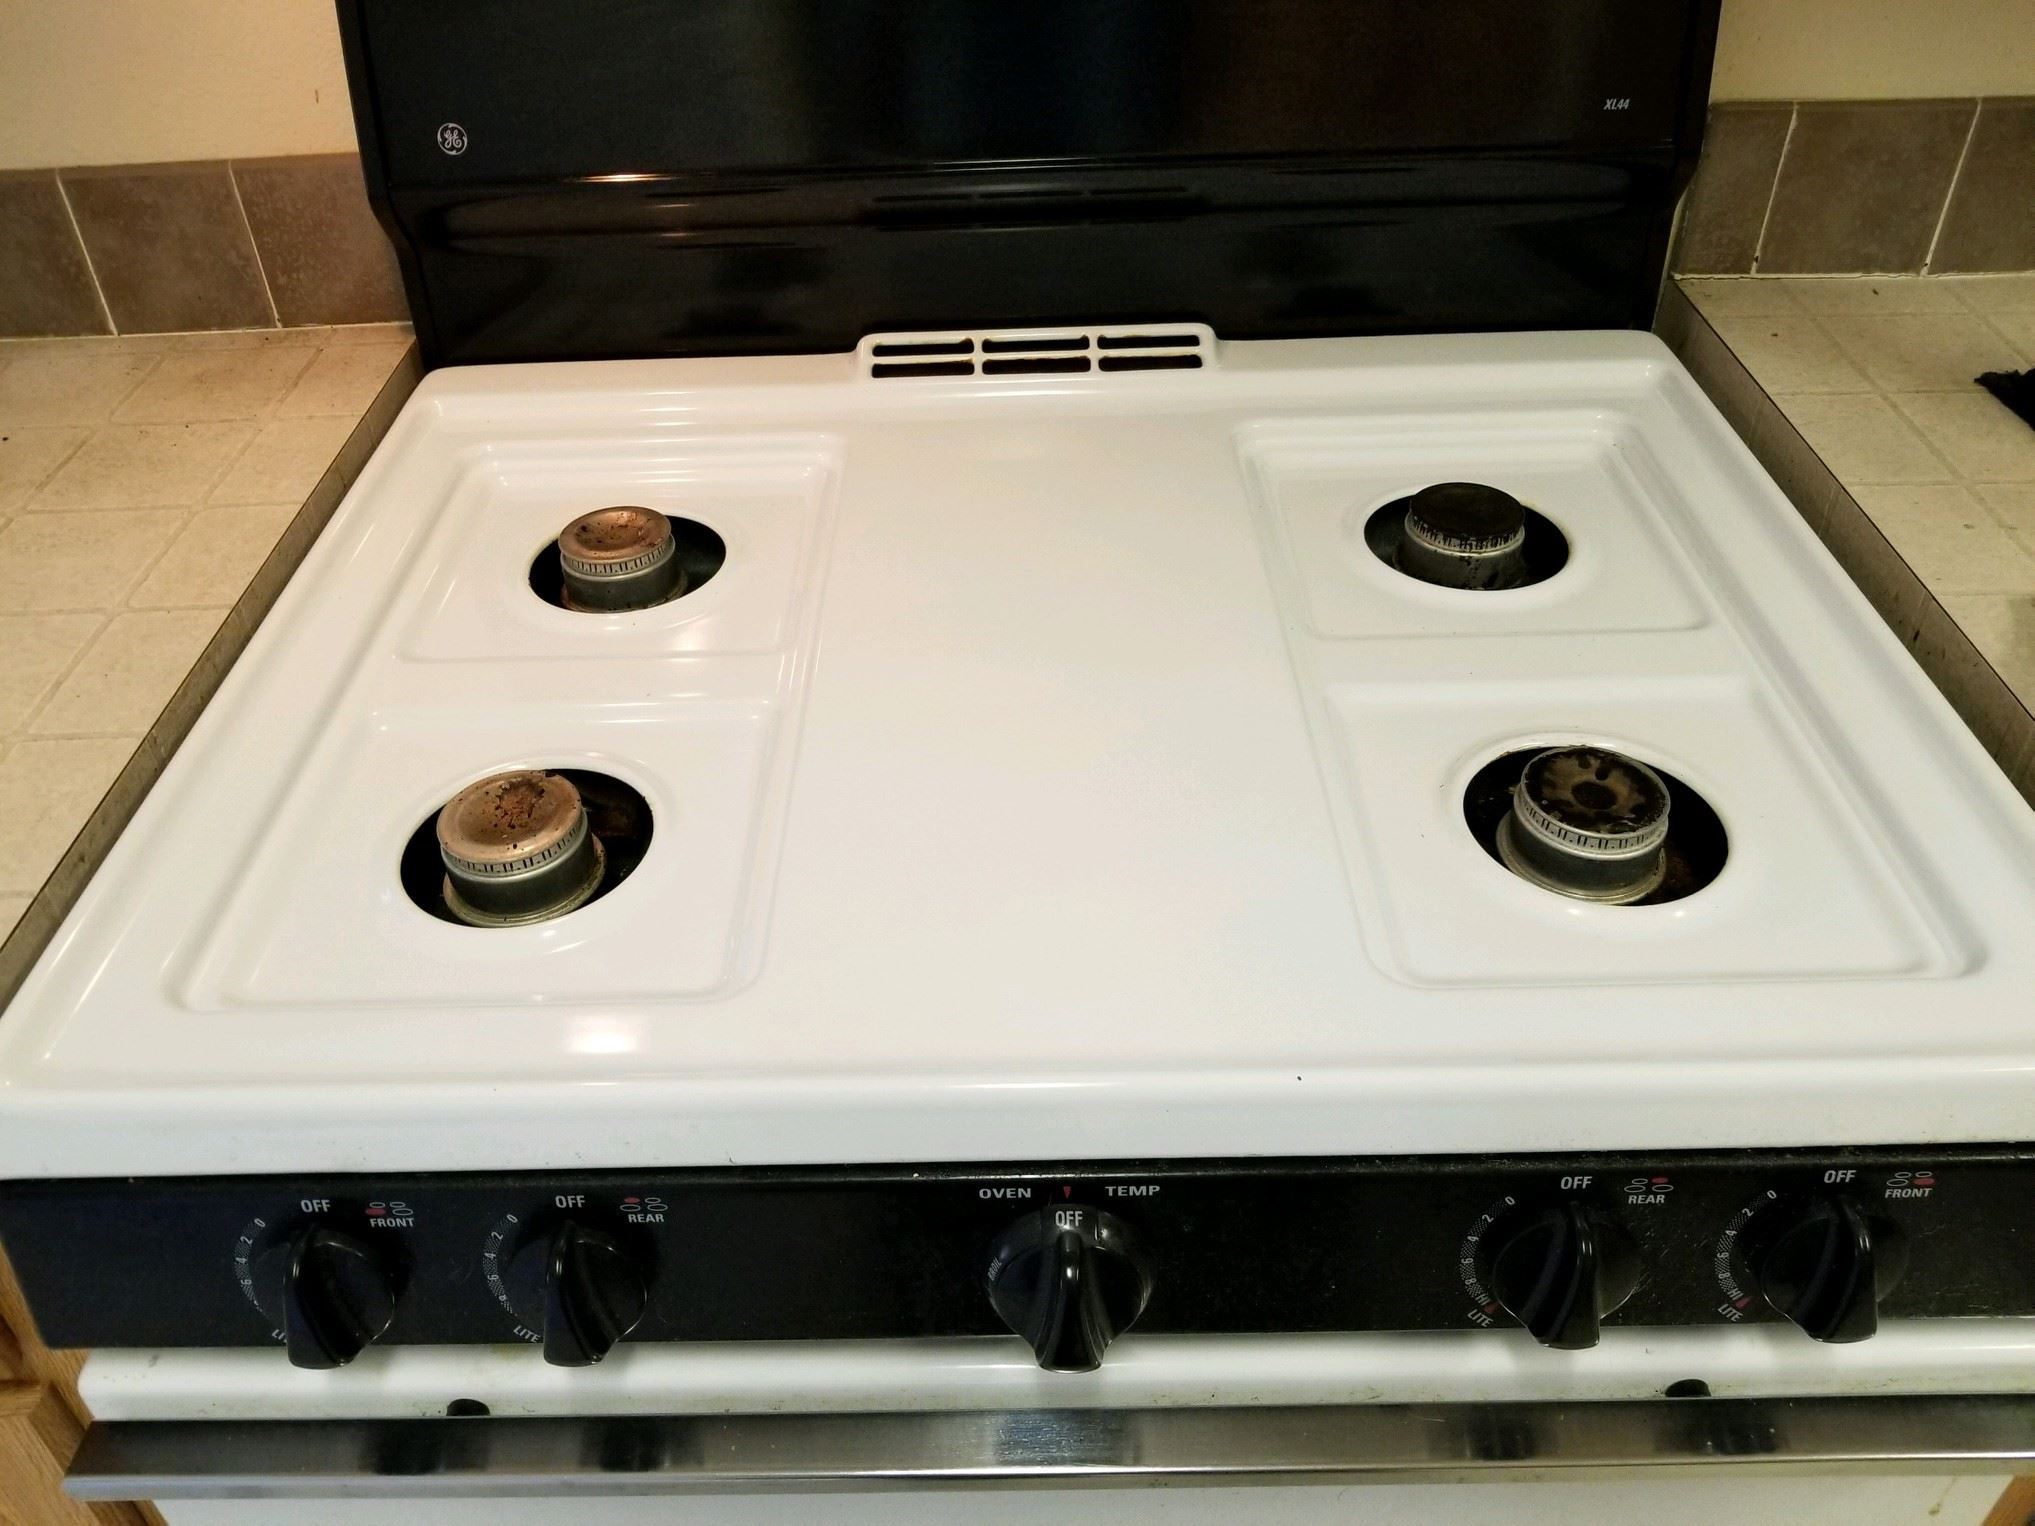 stove top after being cleaned